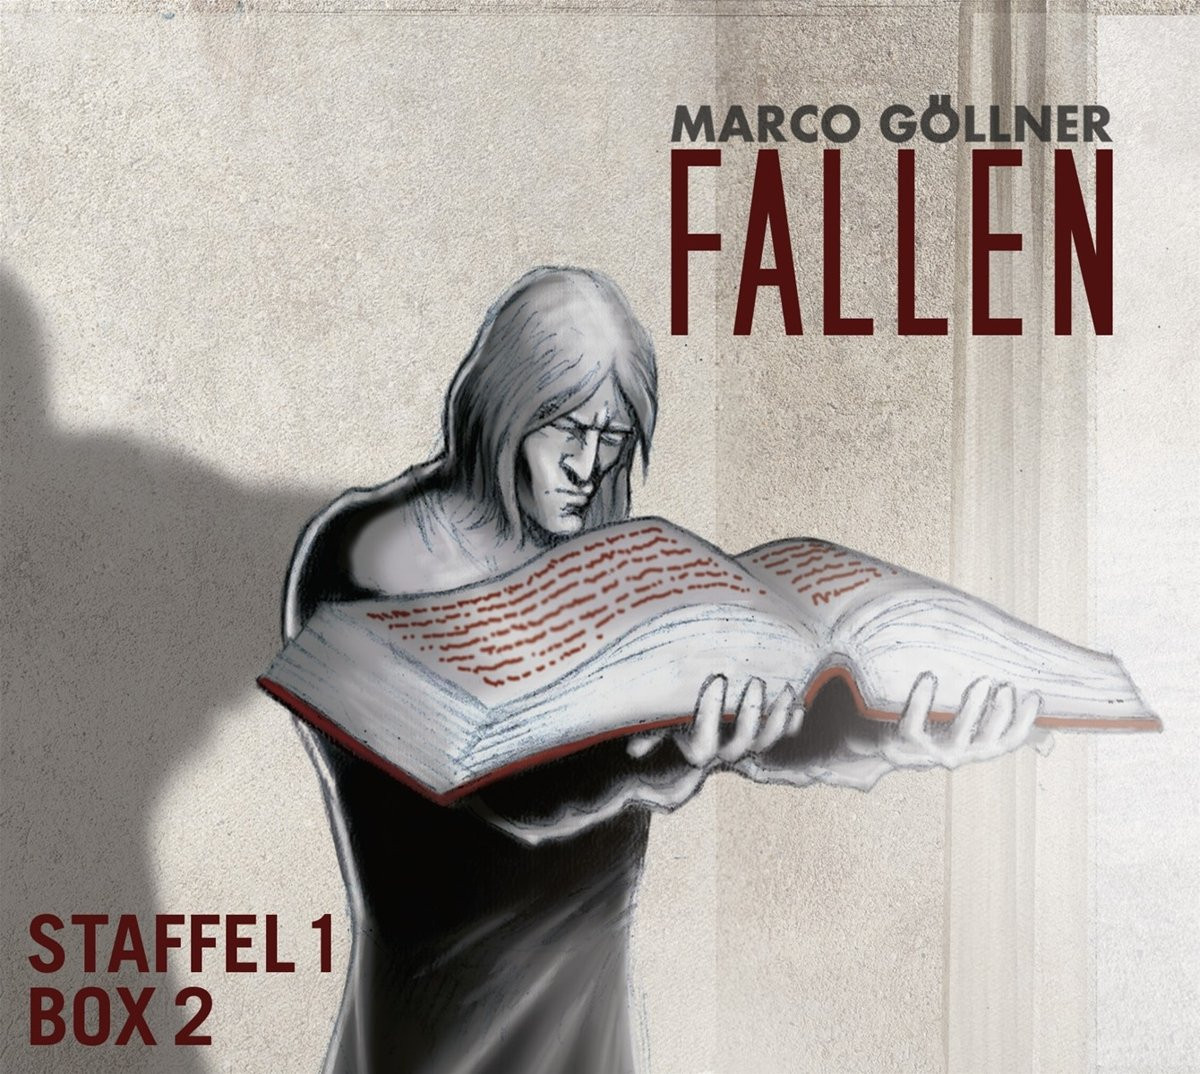 Fallen-Staffel 1: Box 2